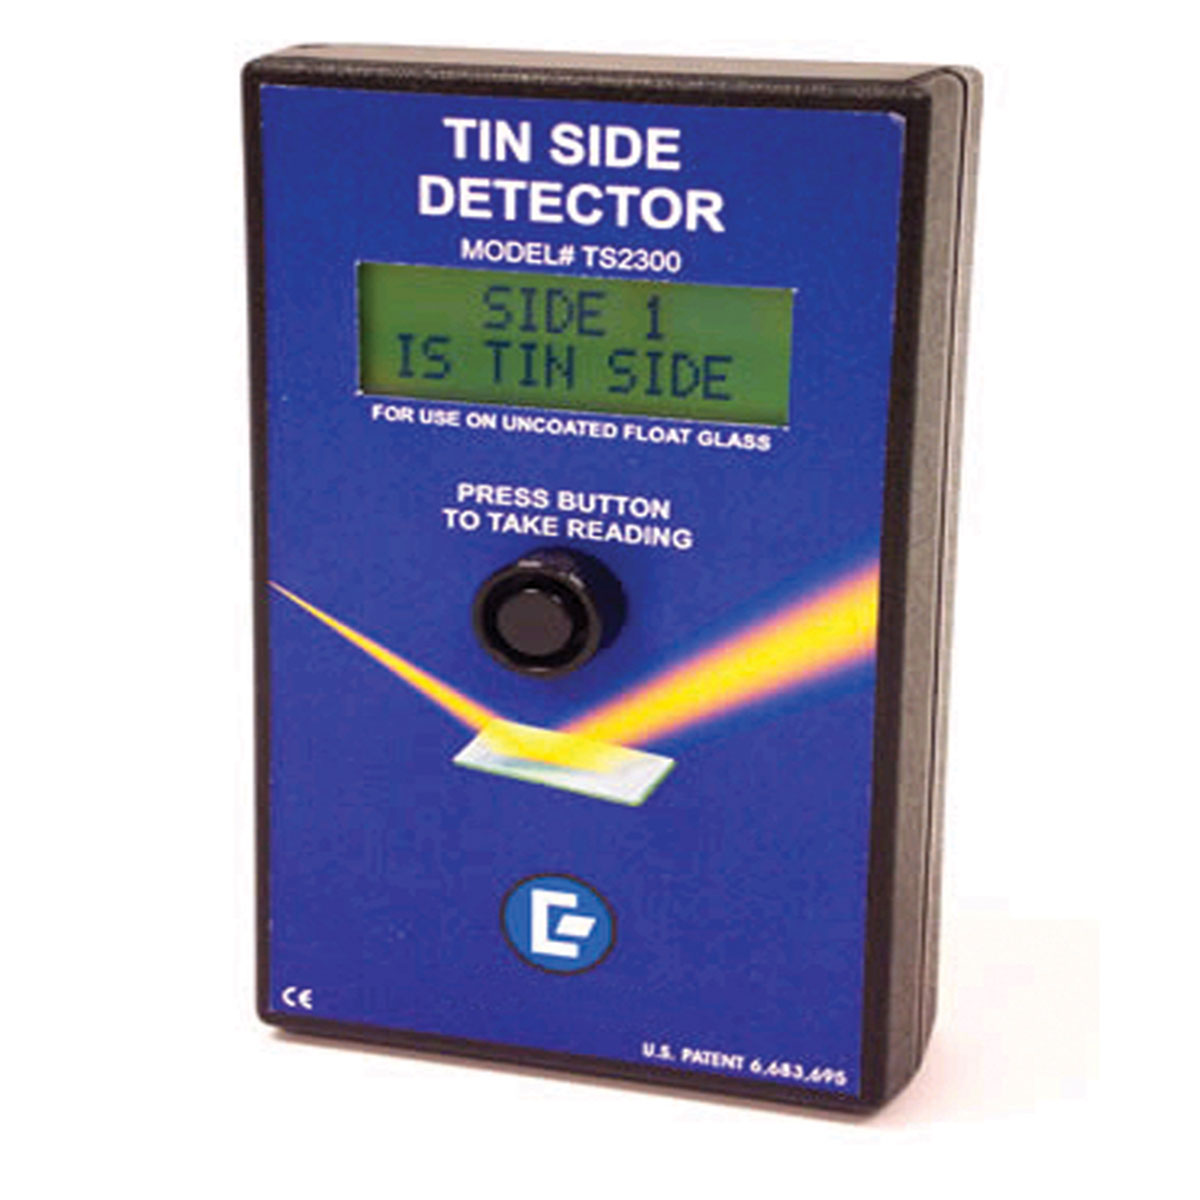 tin side detector for float glass